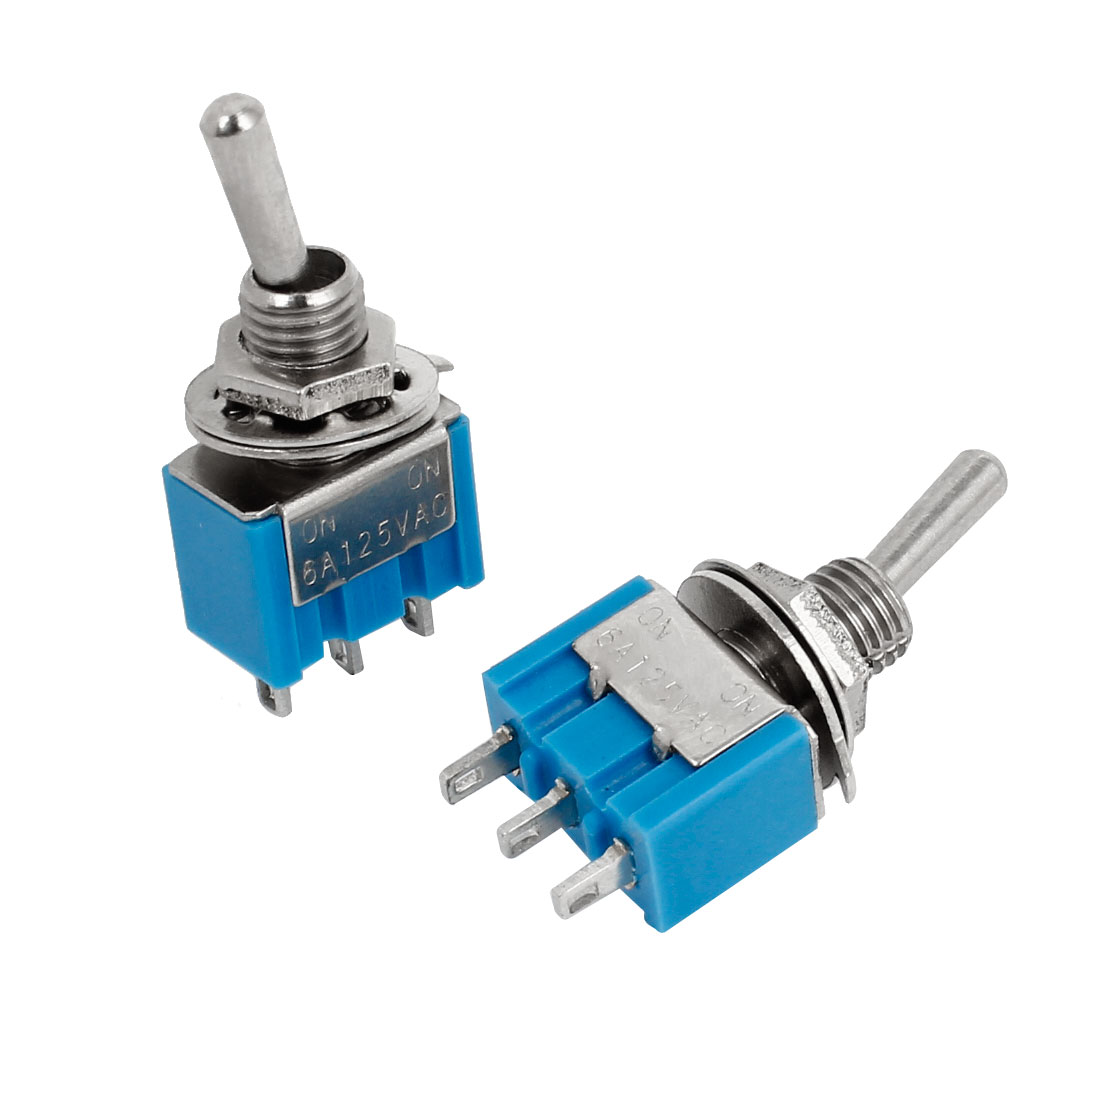 2Pcs AC 125V 6A 3 Pin ON/ON 2 Position SPDT Miniature Toggle Switch Blue